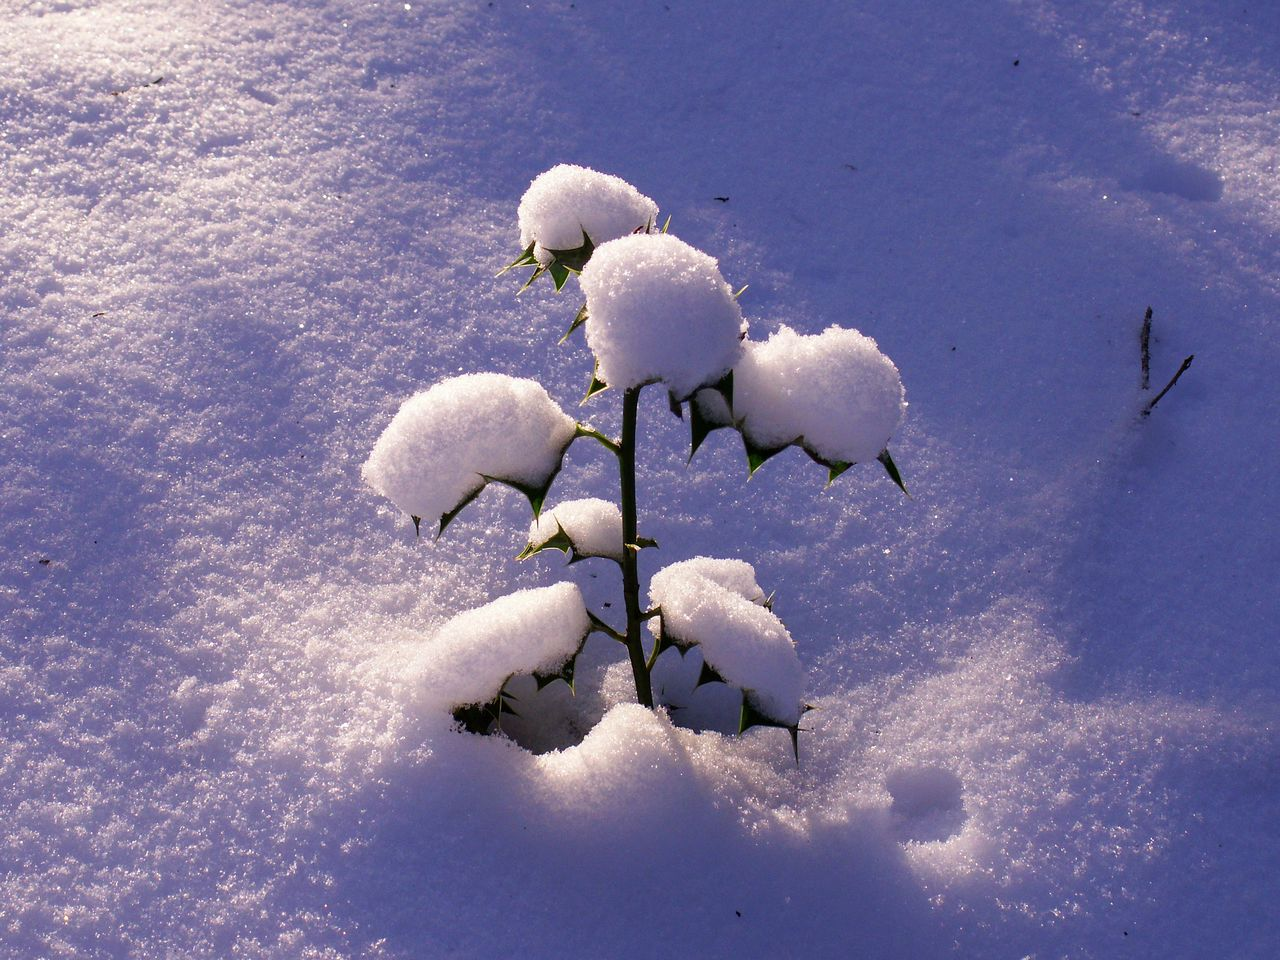 nature, white color, beauty in nature, day, winter, snow, cold temperature, no people, outdoors, tranquility, flower, growth, fragility, close-up